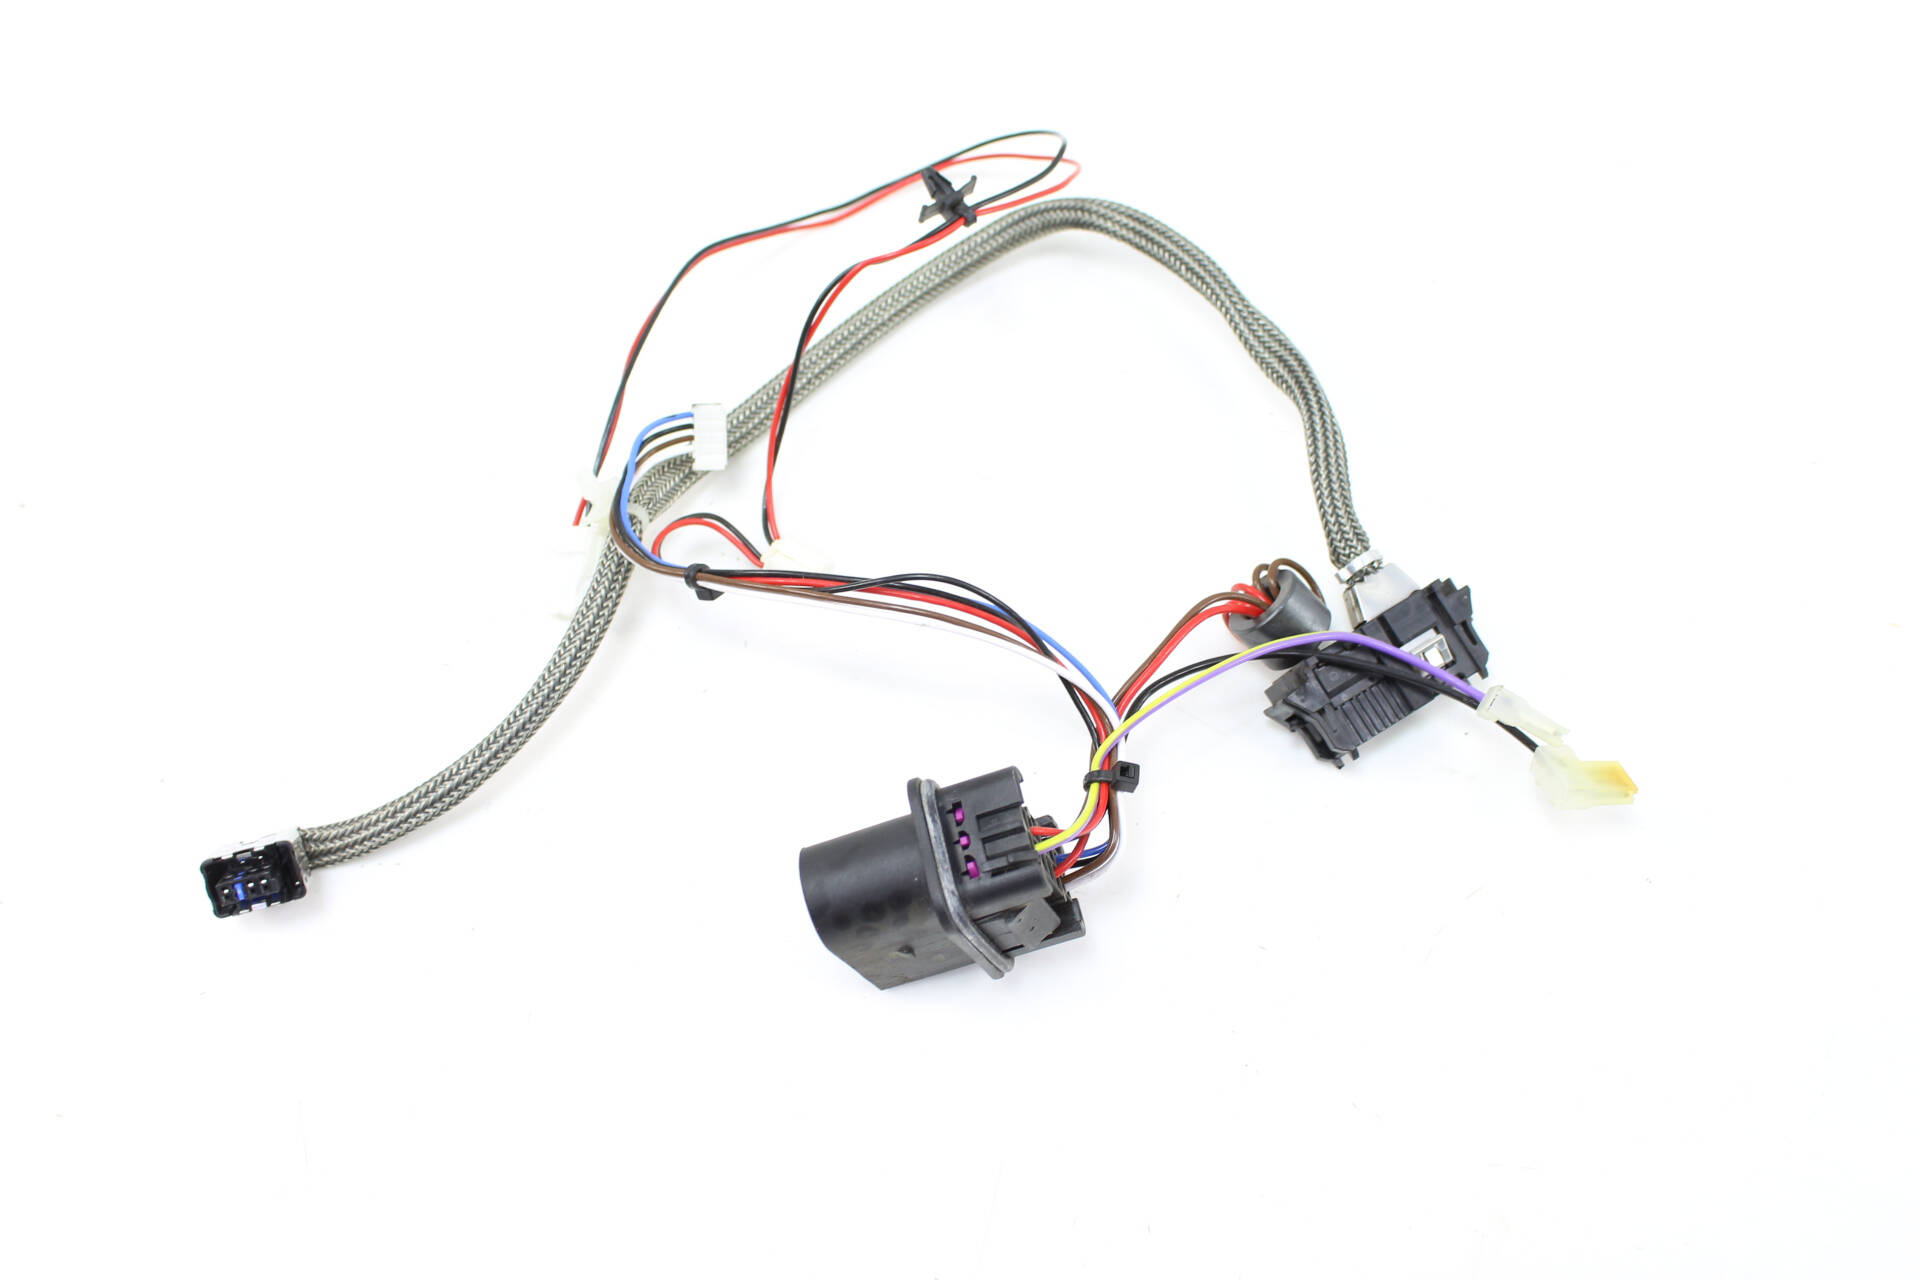 2007 2008 2009 AUDI Q7 4L - LEFT HEADLIGHT INTERNAL WIRING HARNESS | eBay | Audi Q7 Headlight Wiring Harness |  | eBay